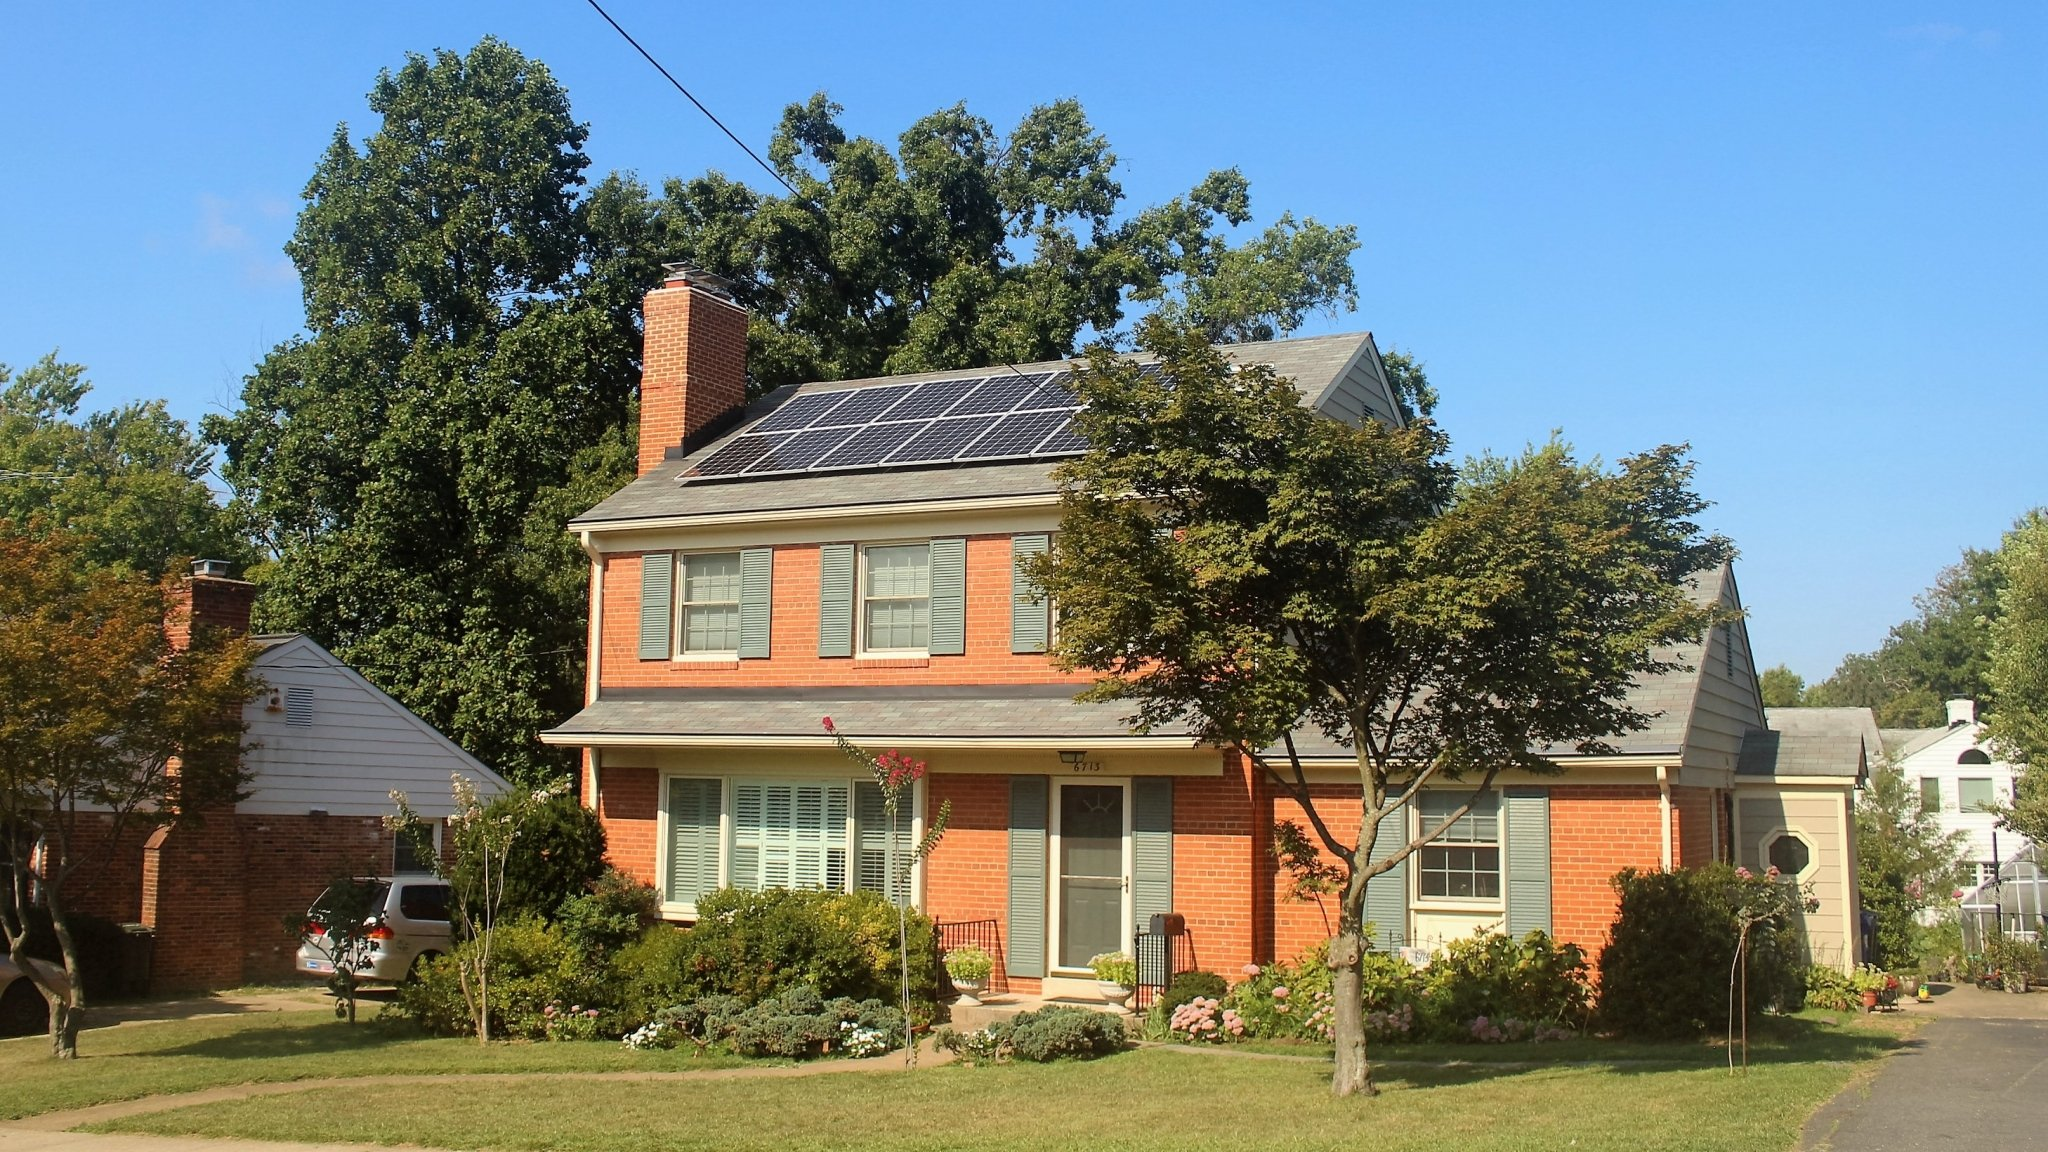 Solar PV residential in Arlington VA (Virginia)